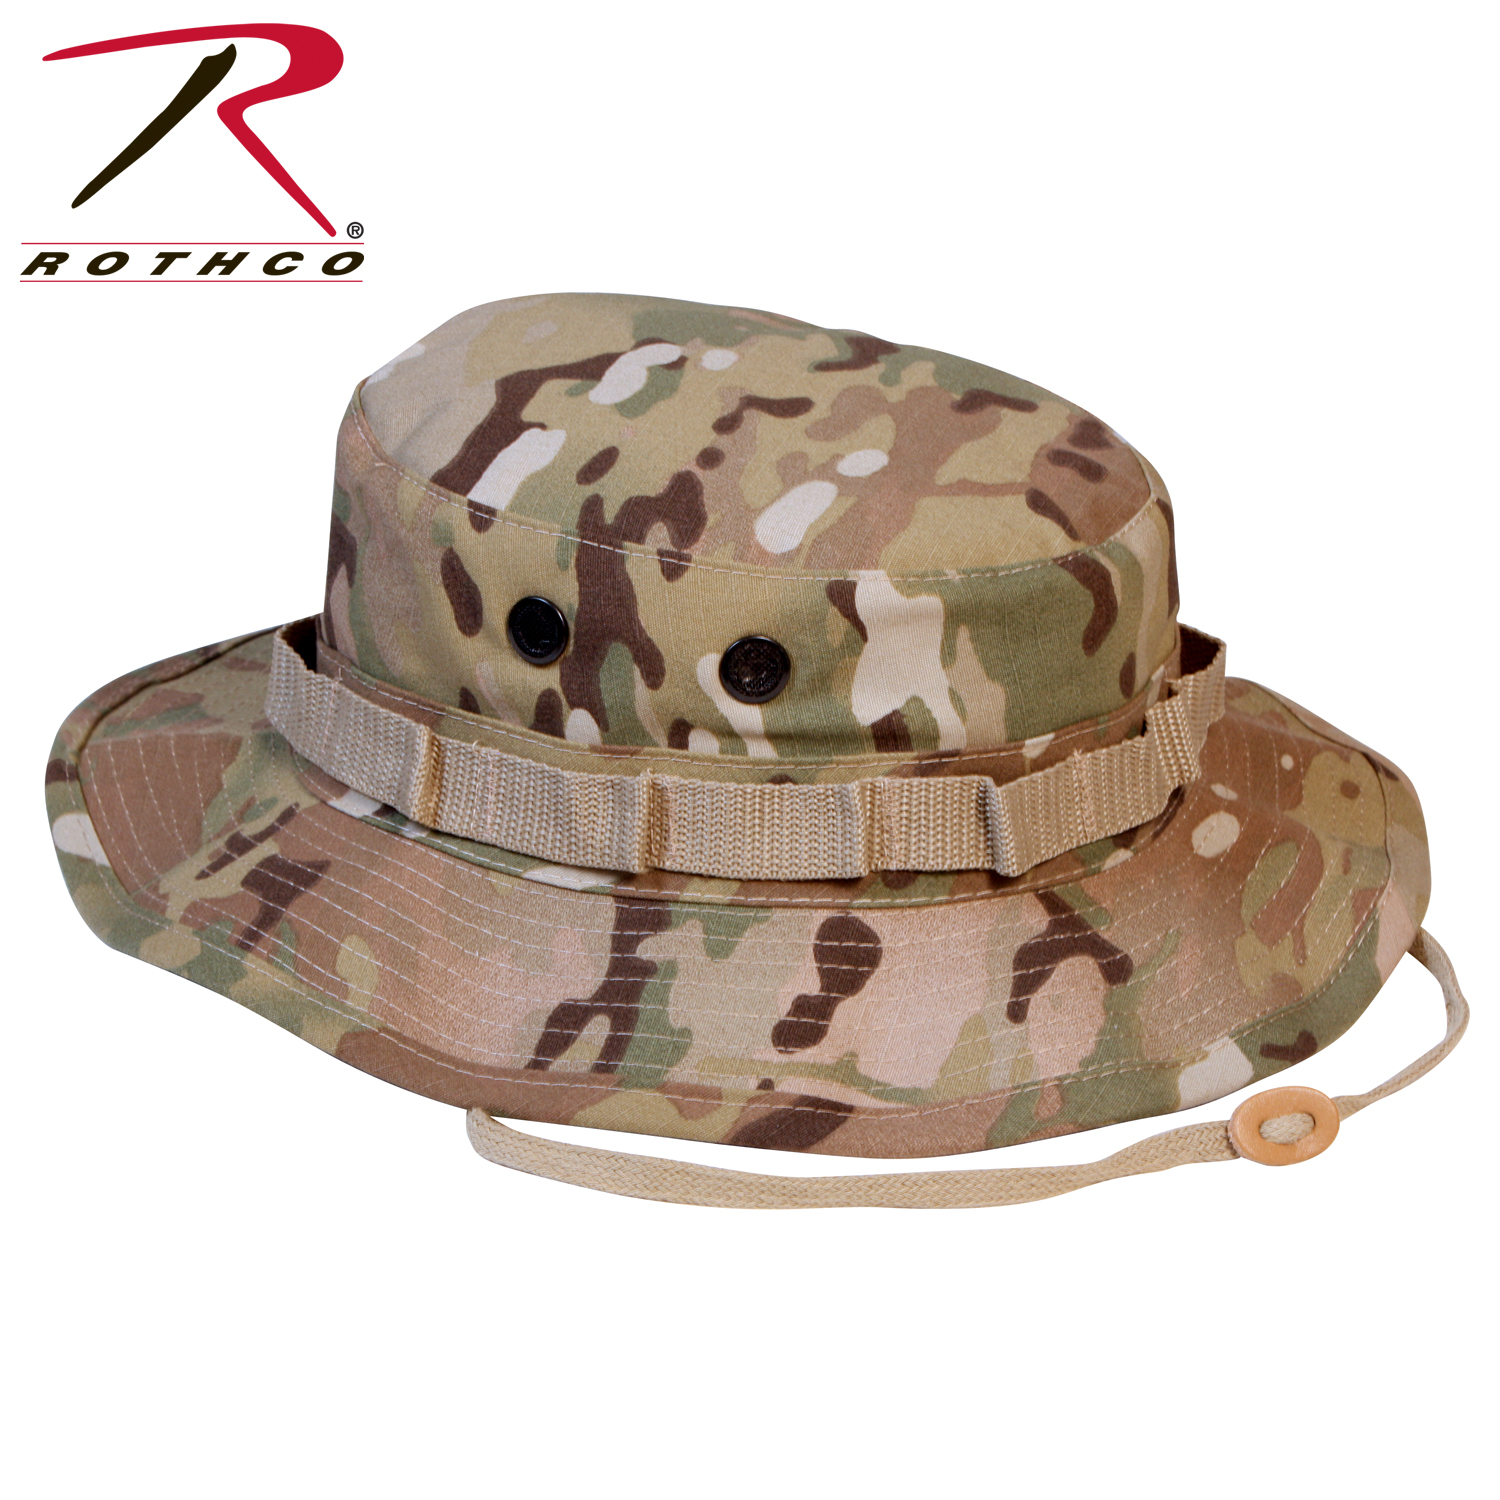 8008183c25f Rothco Boonie Hat - MultiCam